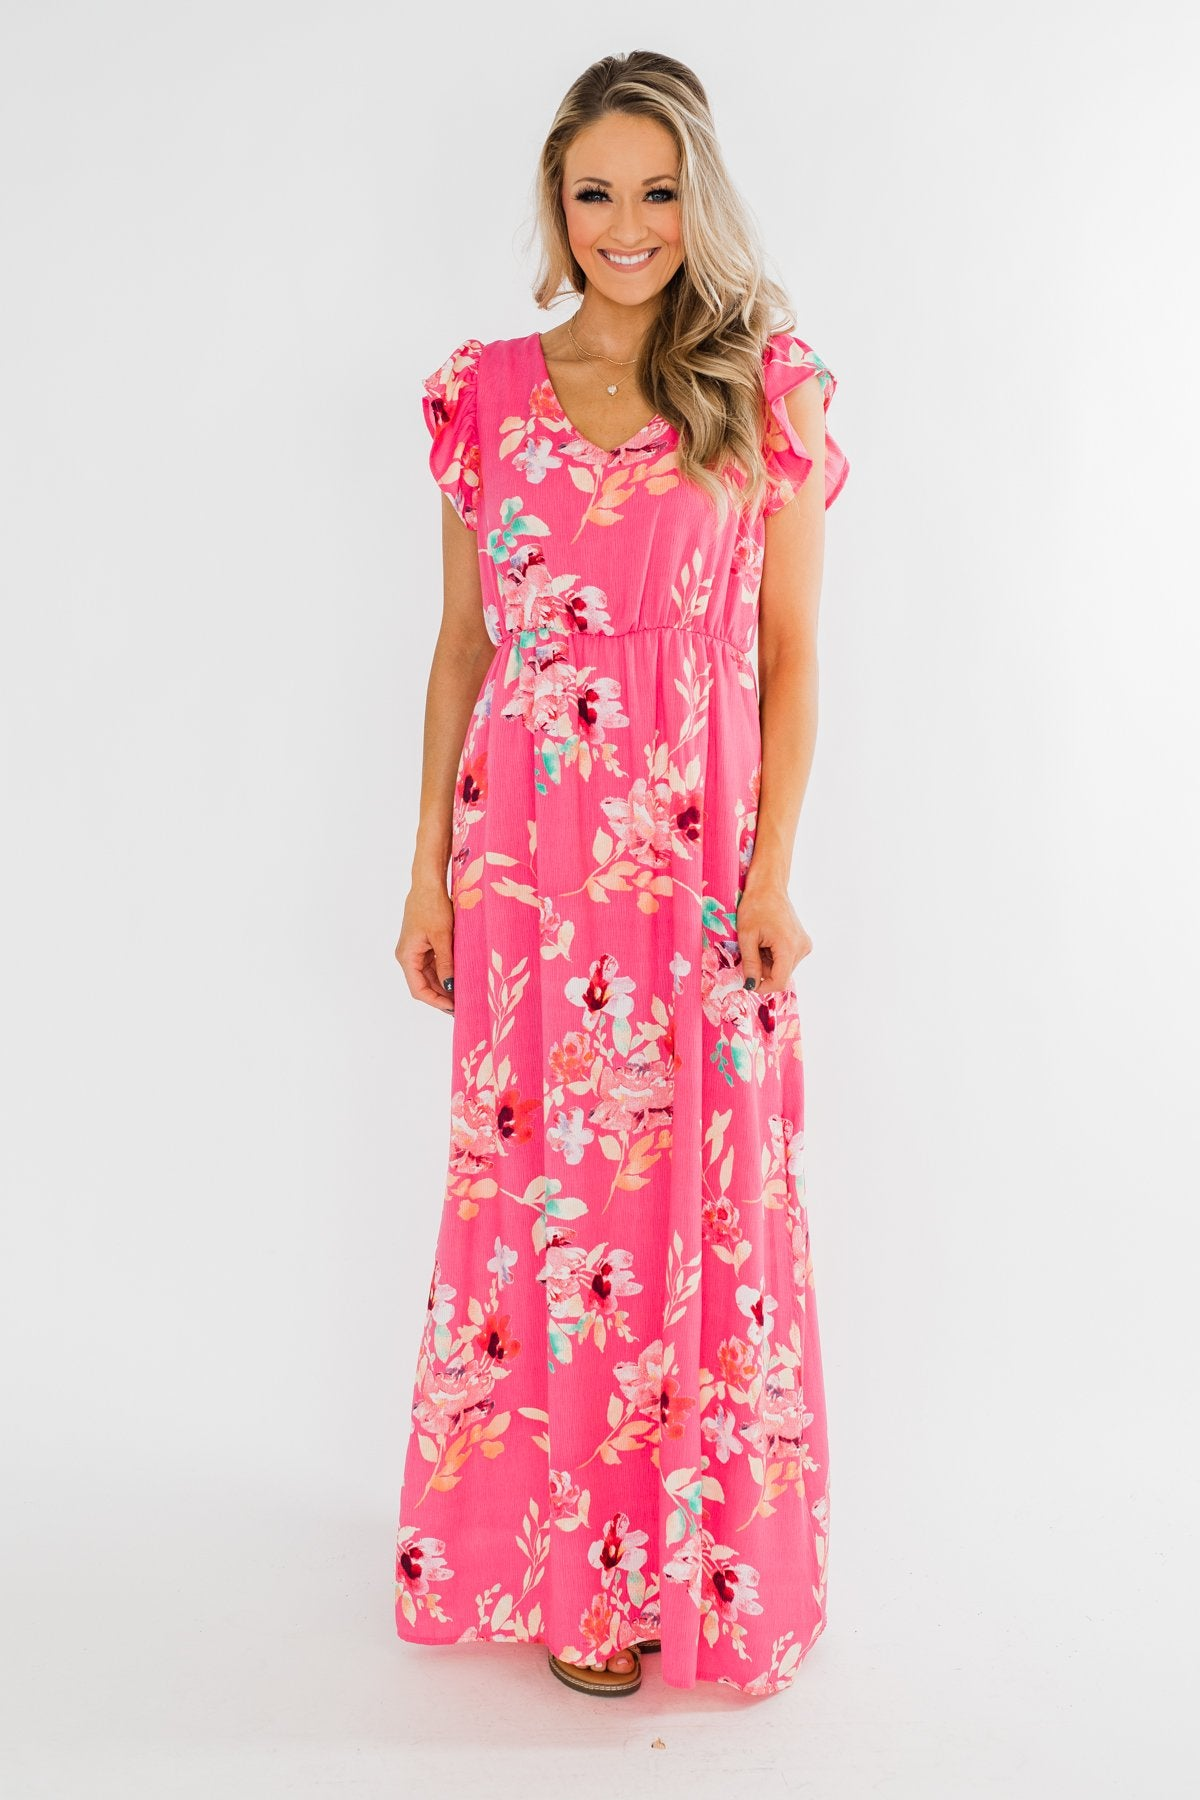 Look of Love Floral Maxi Dress- Pink